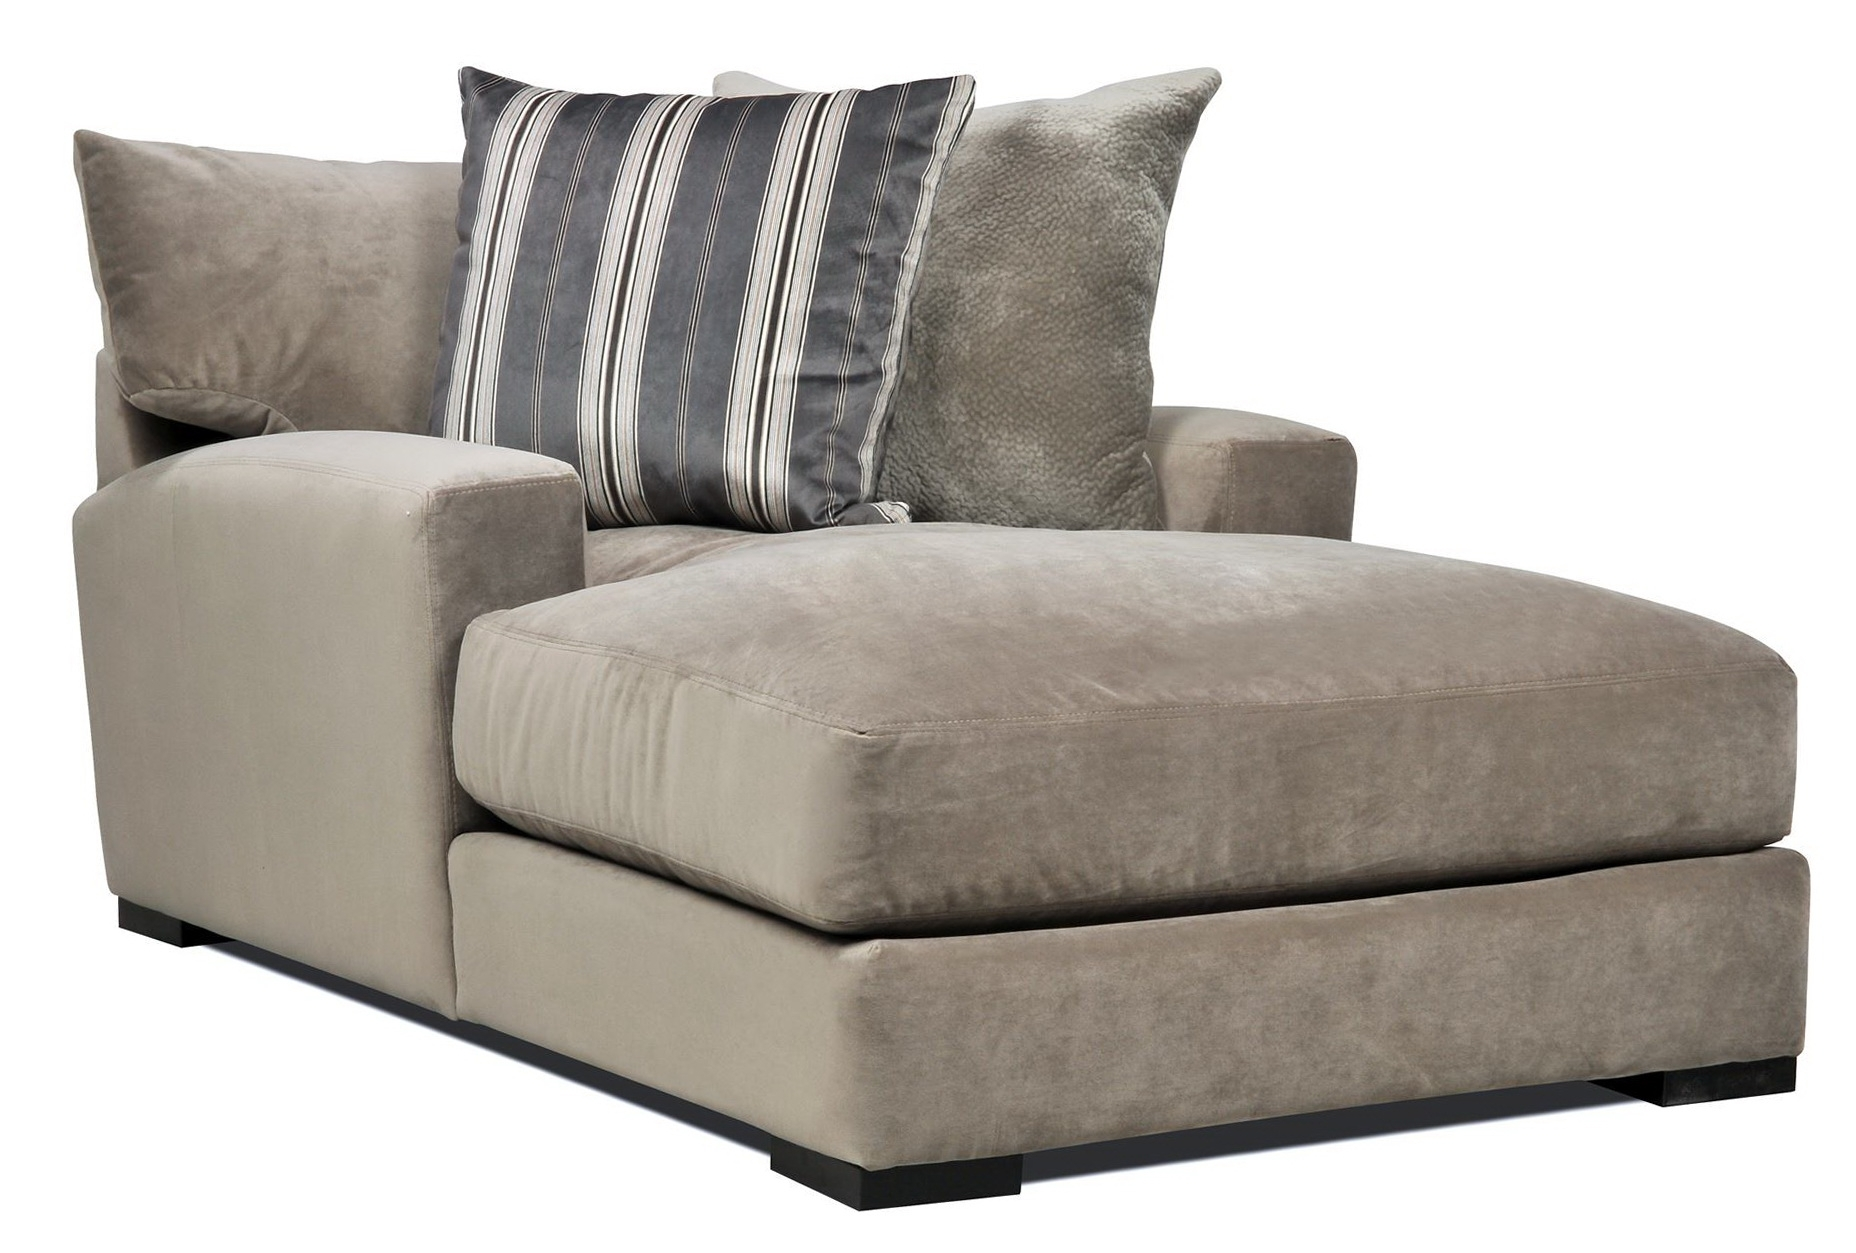 Most Popular Double Wide Chaise Lounge Indoor With 2 Cushions (View 6 of 15)